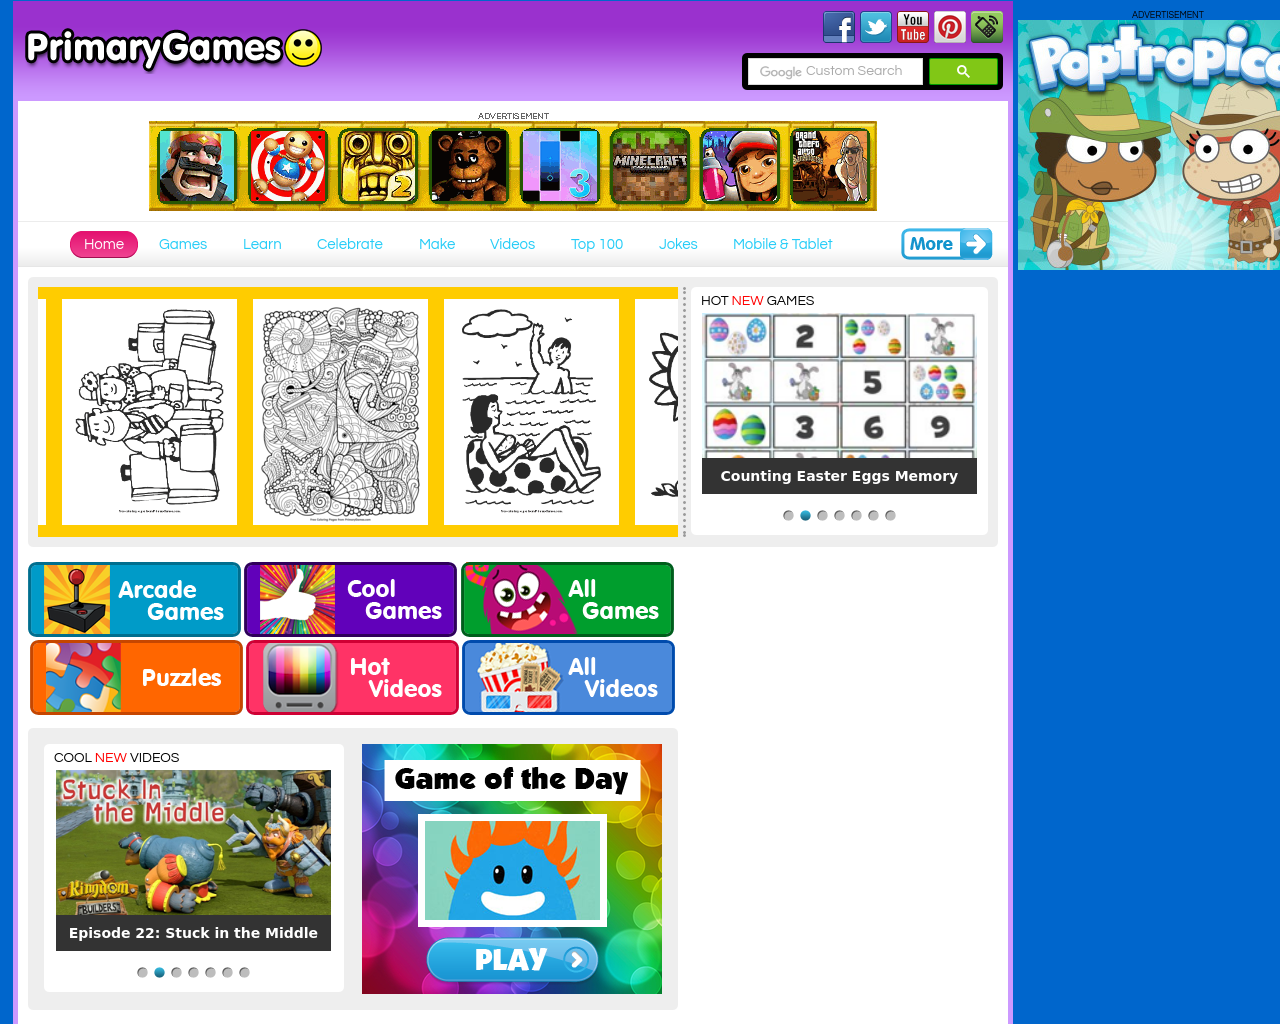 Primary Games: The Site For Primary School Gaming